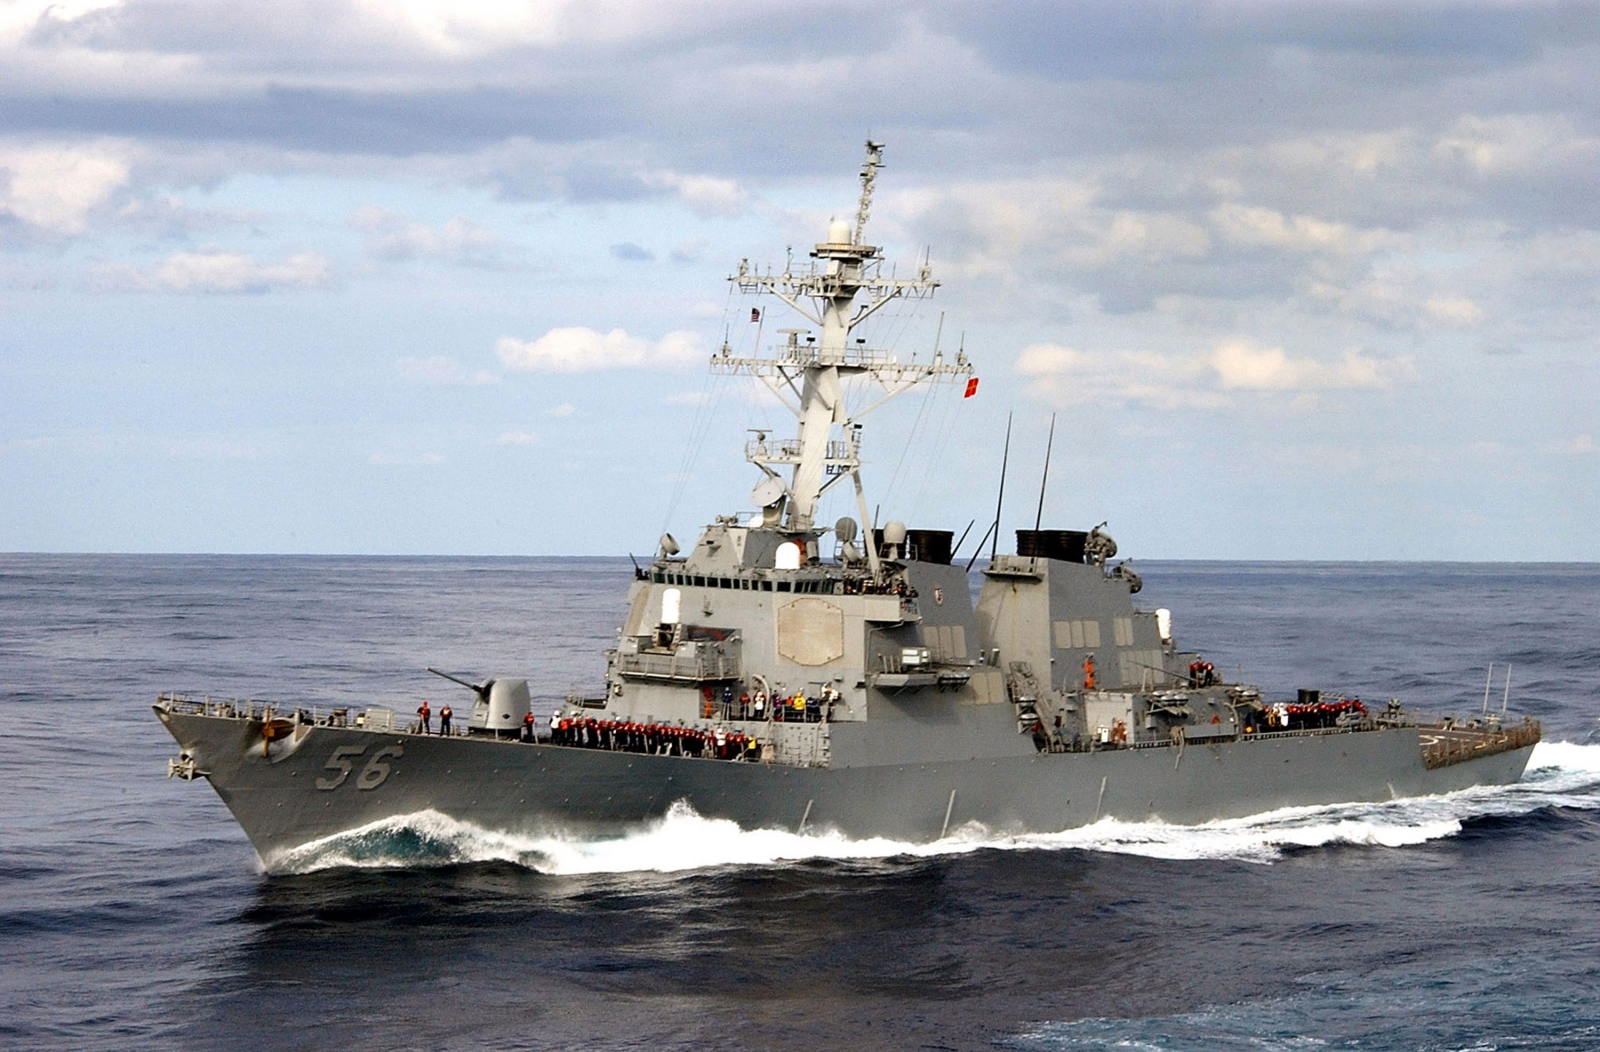 US Navy destroyer USS John S. McCain collides with merchant vessel